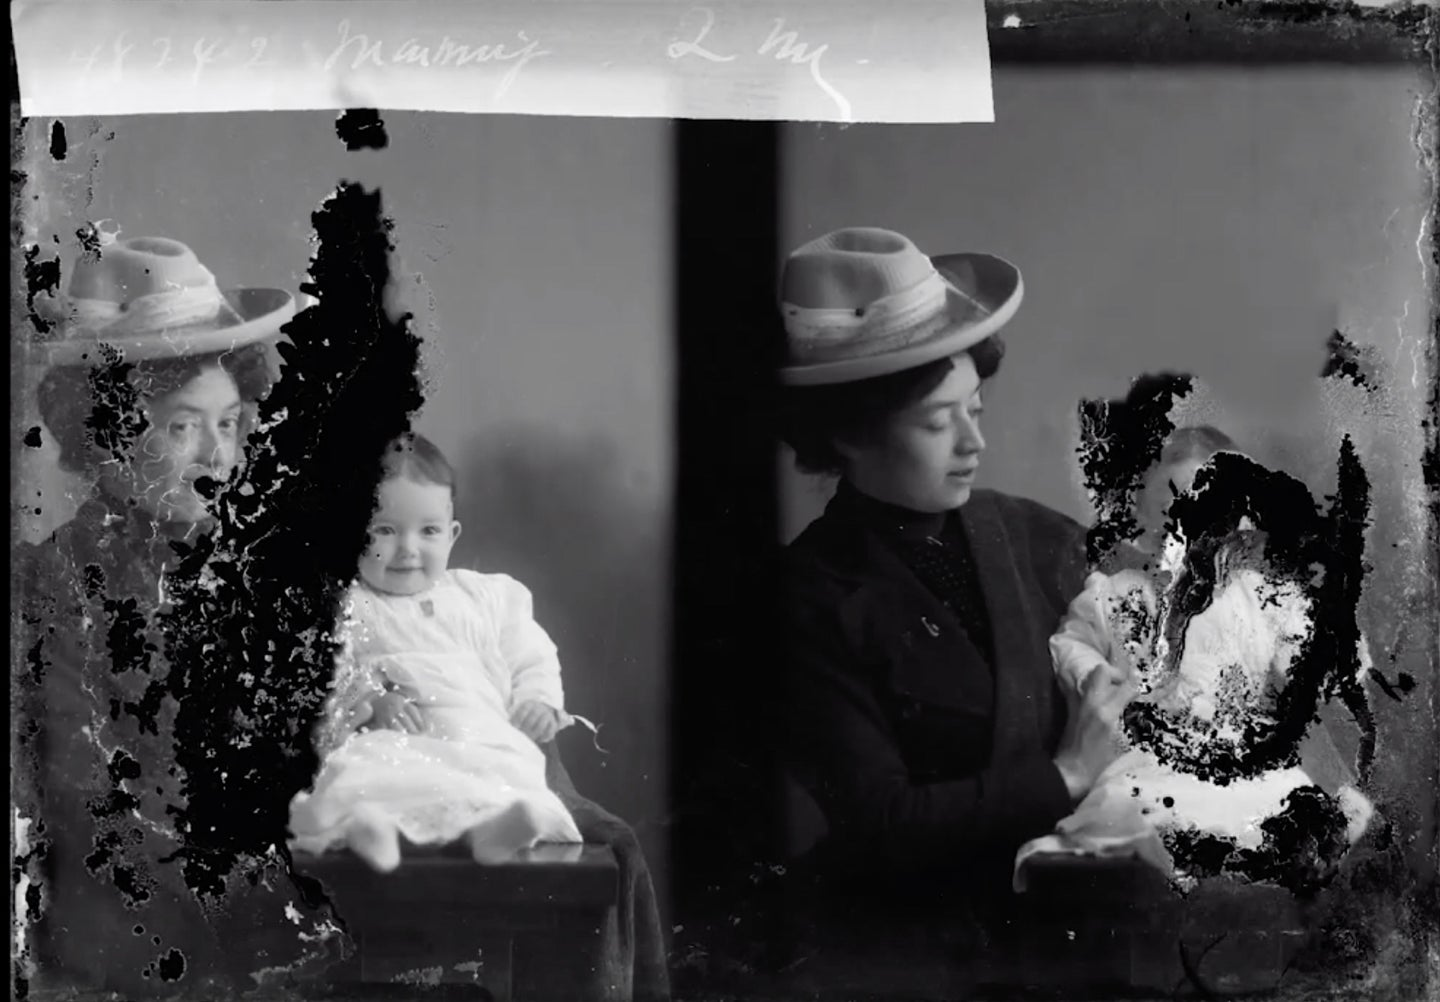 Watch an expert restore and colorize a damaged photograph from 1903